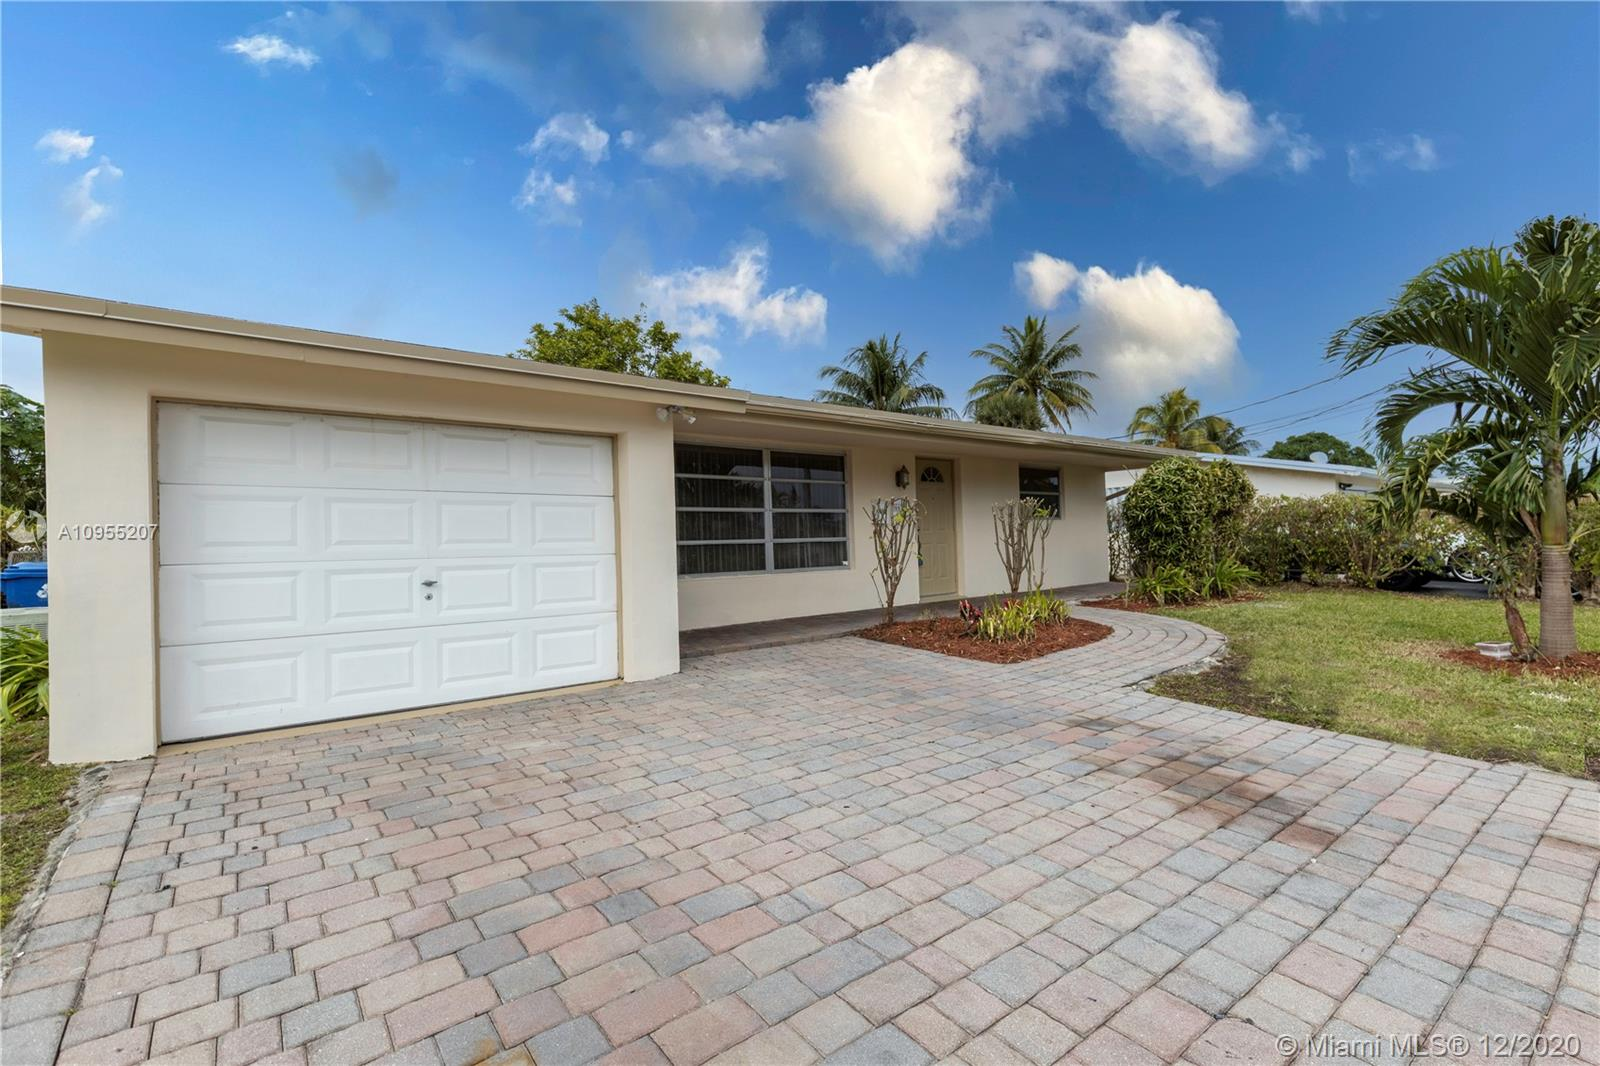 Enjoy the beautiful sunsets of South Florida and savor the sweet mangoes right from your own backyard. What else would you want more in your new home? The peaceful canal view adds to the updated new modern kitchen and 3 stacked bedrooms style home. The Florida Room enclosed can be the sunshine of the rainy days. The spacious driveway can be a convenience while family and friends are visiting. This home has NO HOA. It will not last long, come check it out!